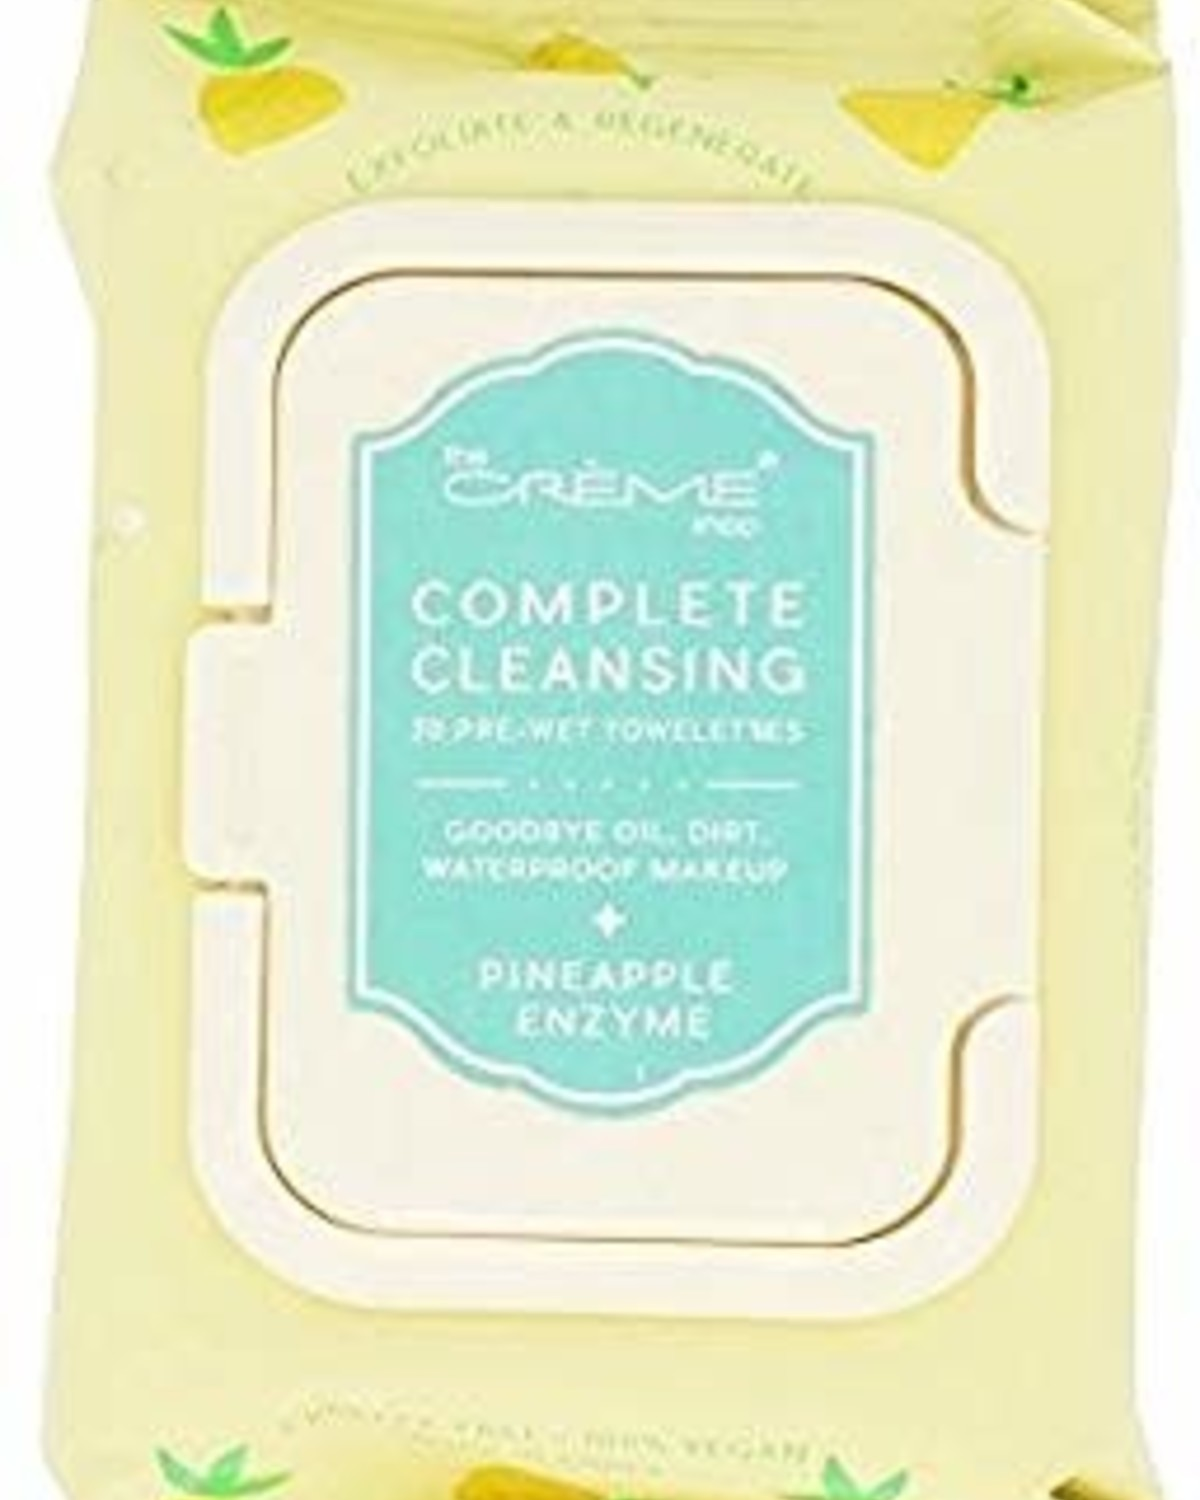 Pineapple Enzyme Make Up Cleansing Wipes